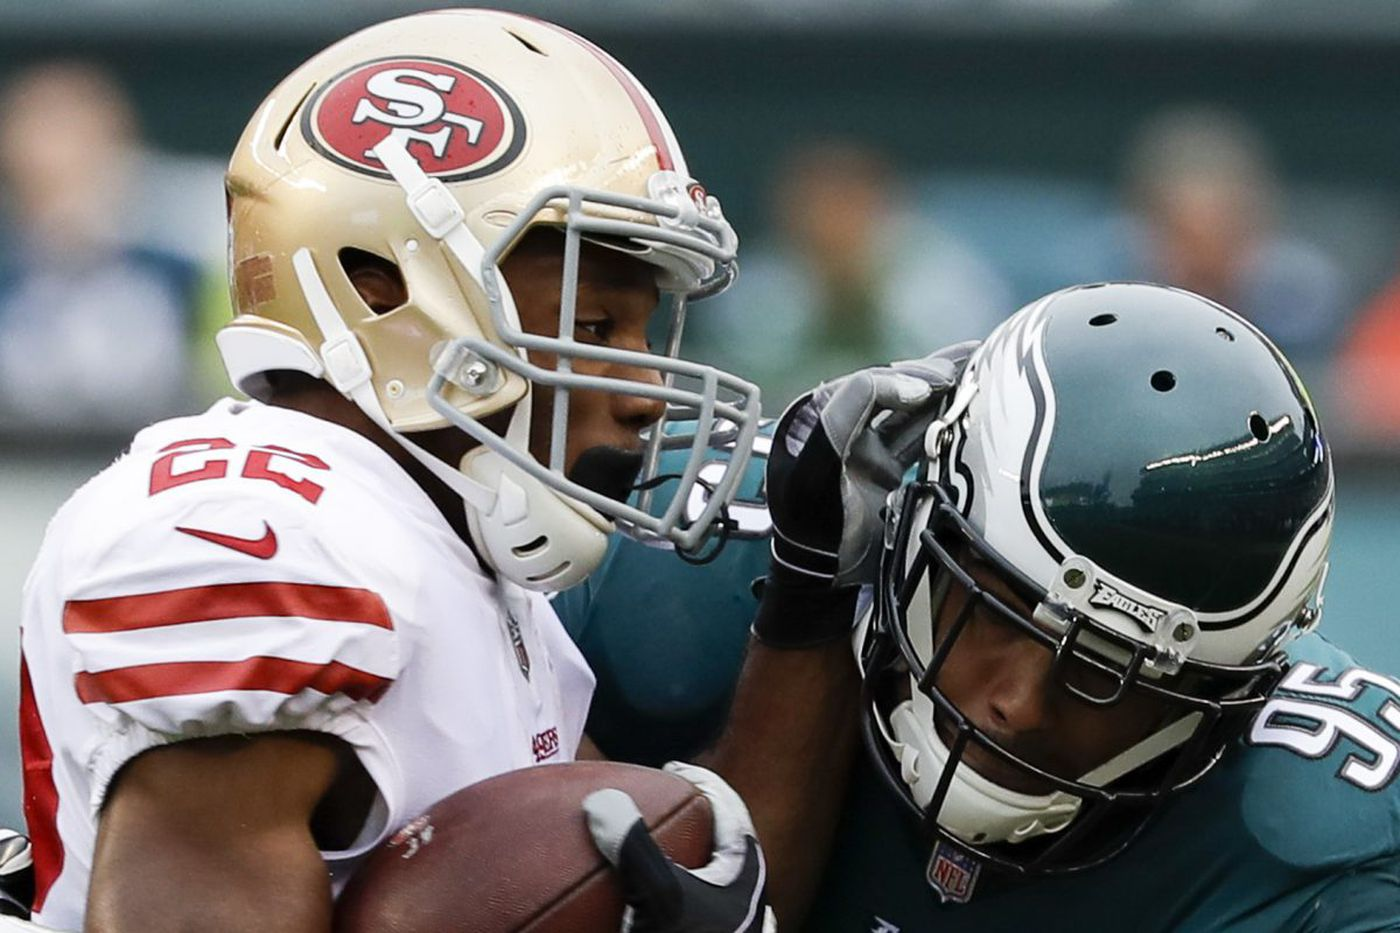 Five reasons the Eagles beat the 49ers | Paul Domowitch